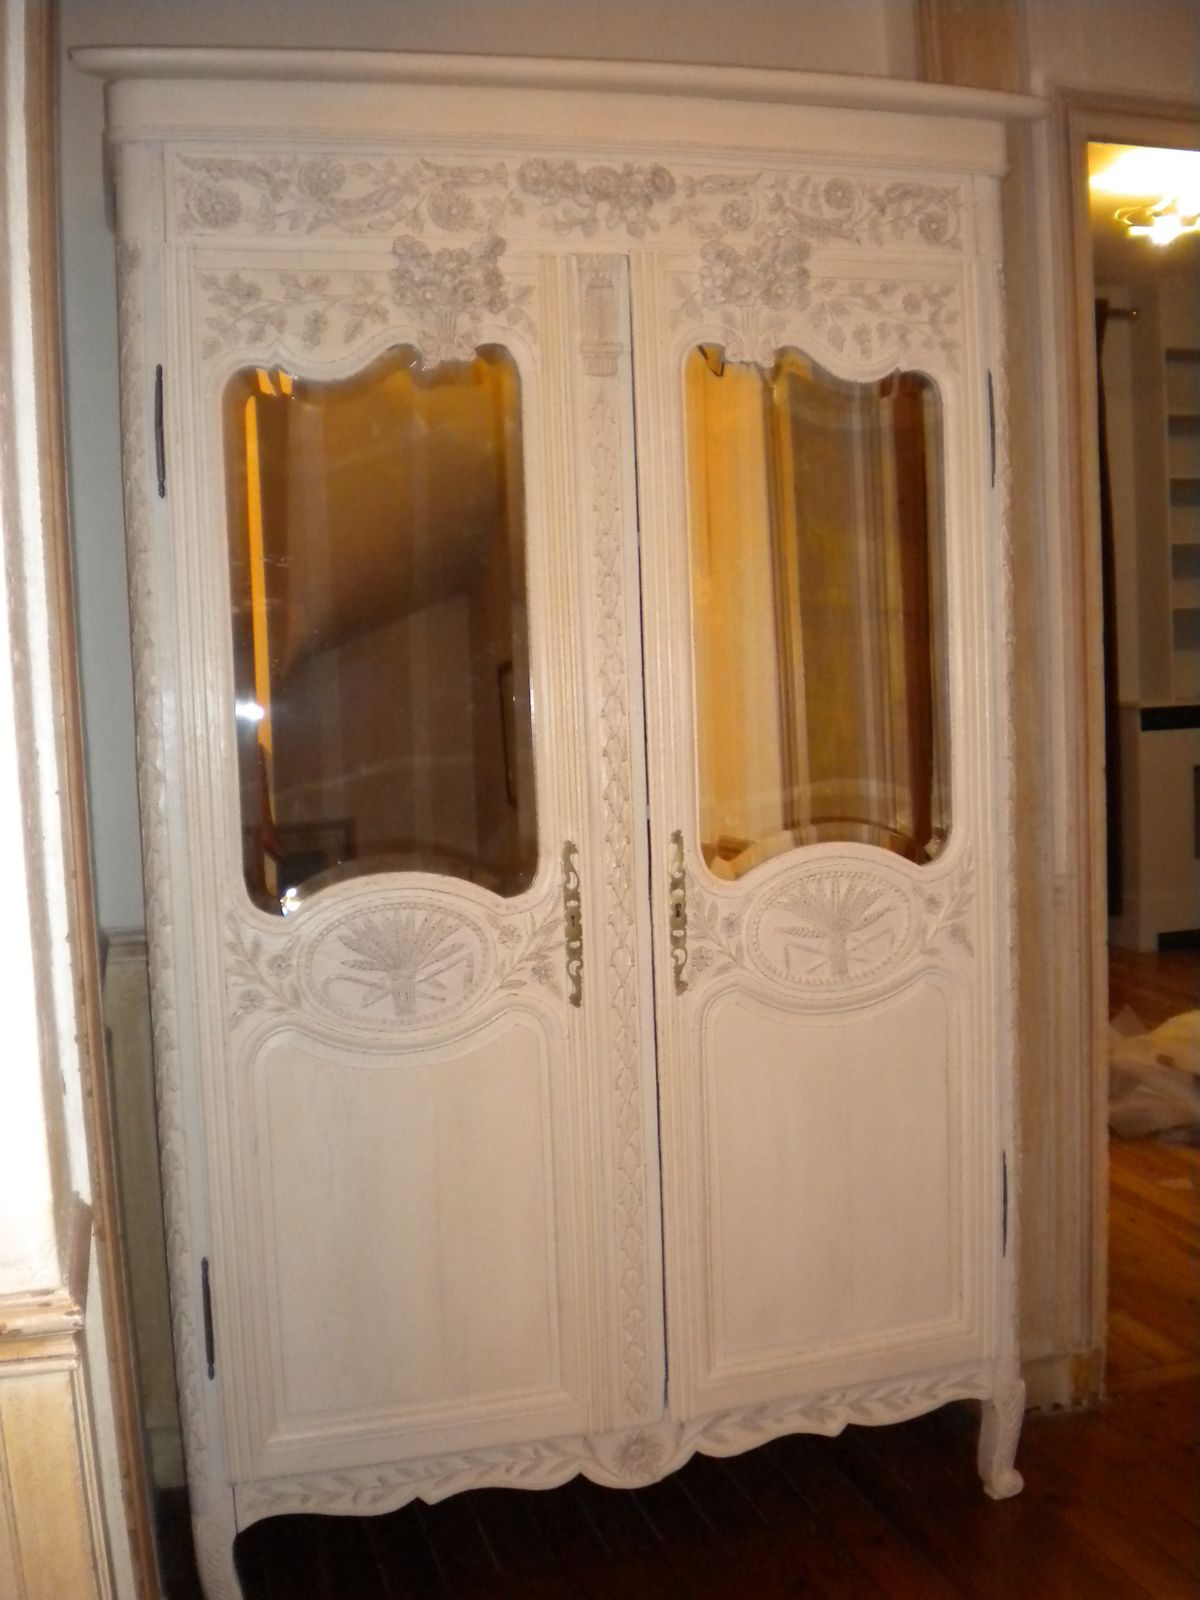 metamorphose d une armoire ancienne ambiance patine relooking de picture to pin on pinterest. Black Bedroom Furniture Sets. Home Design Ideas